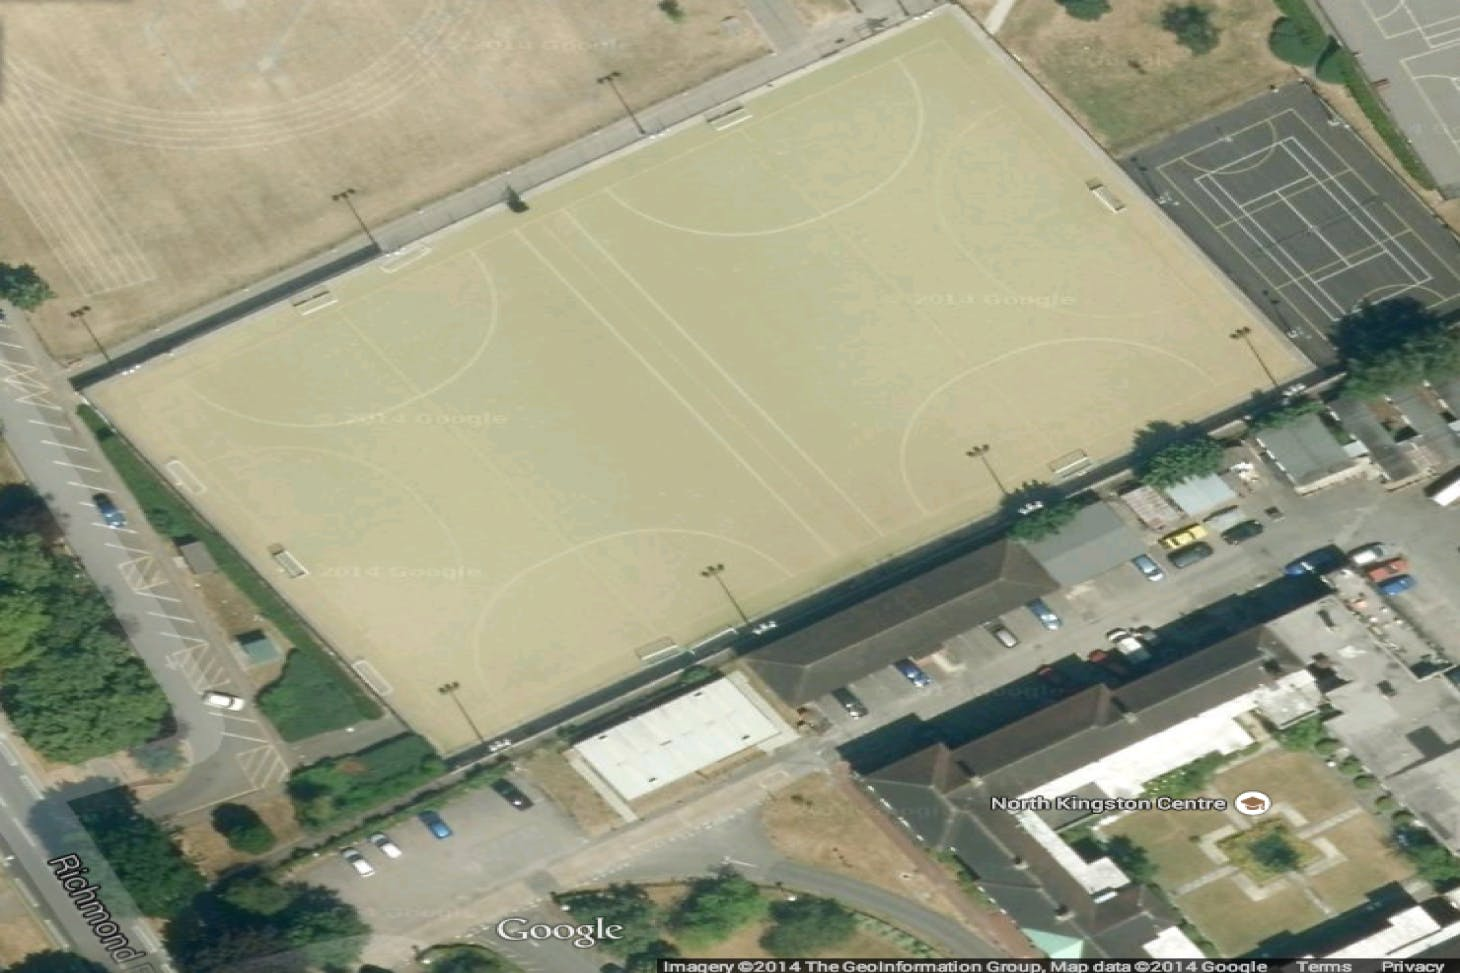 Tiffin Girls School Community Sports Centre 11 a side | 3G Astroturf football pitch